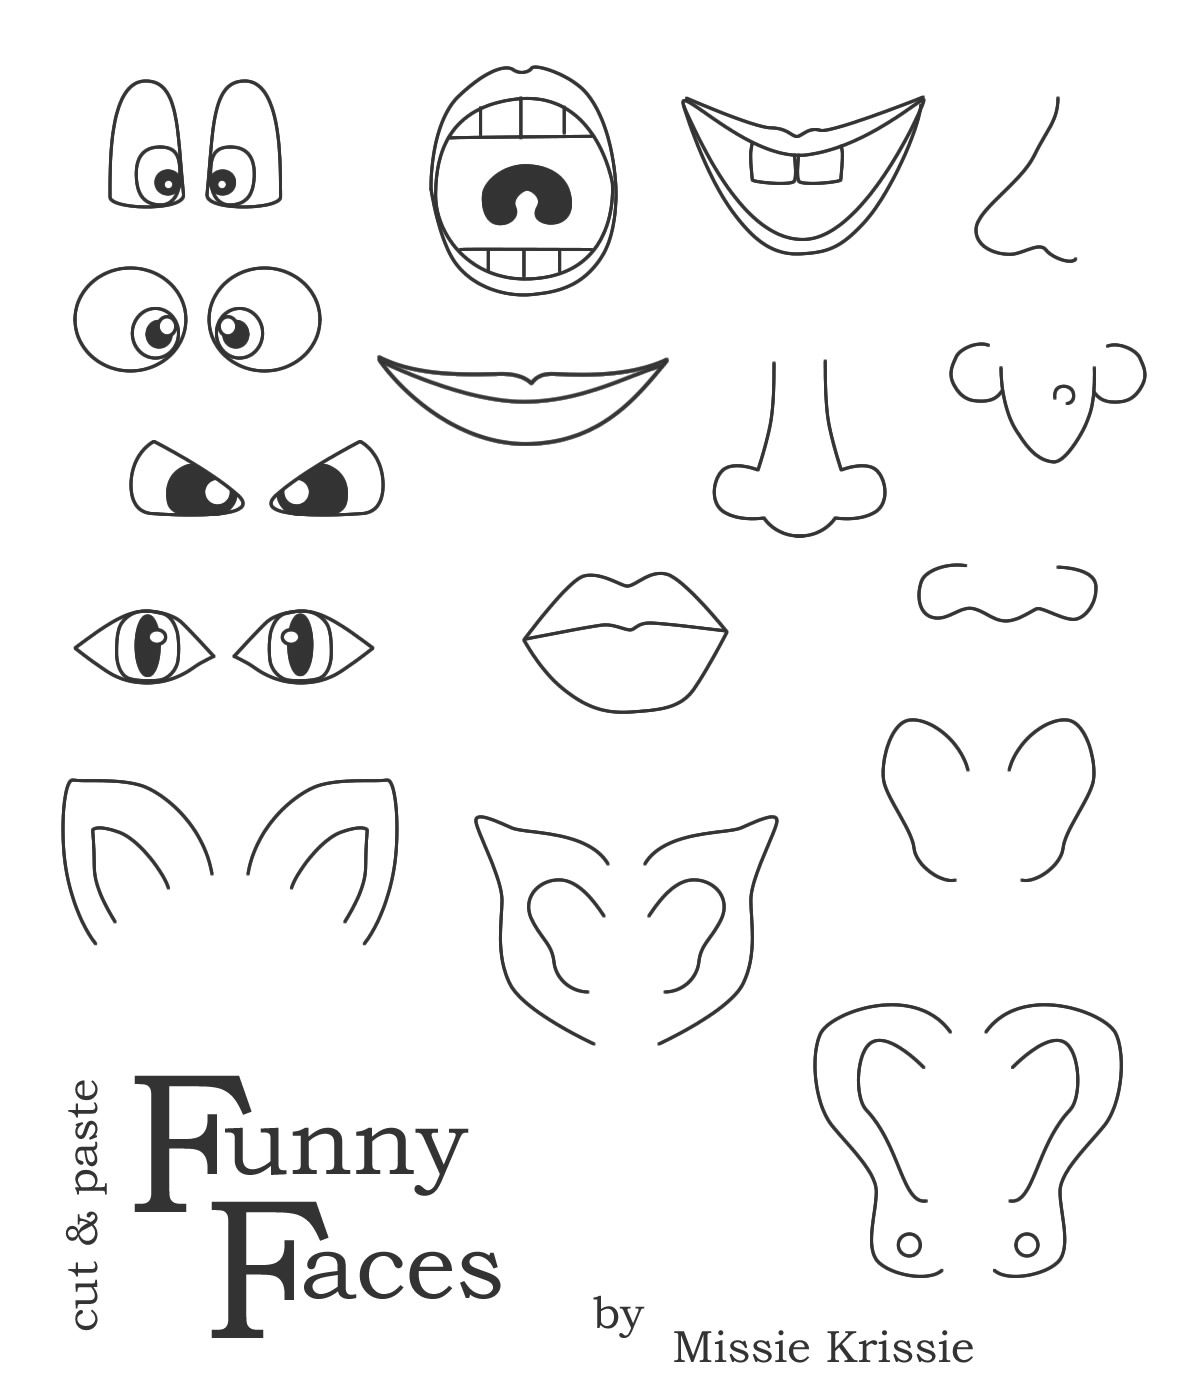 Funny balloon faces - Missie Krissie Blog Funny Faces For Kids Use For Pumpkin Face Parts Craft Activity